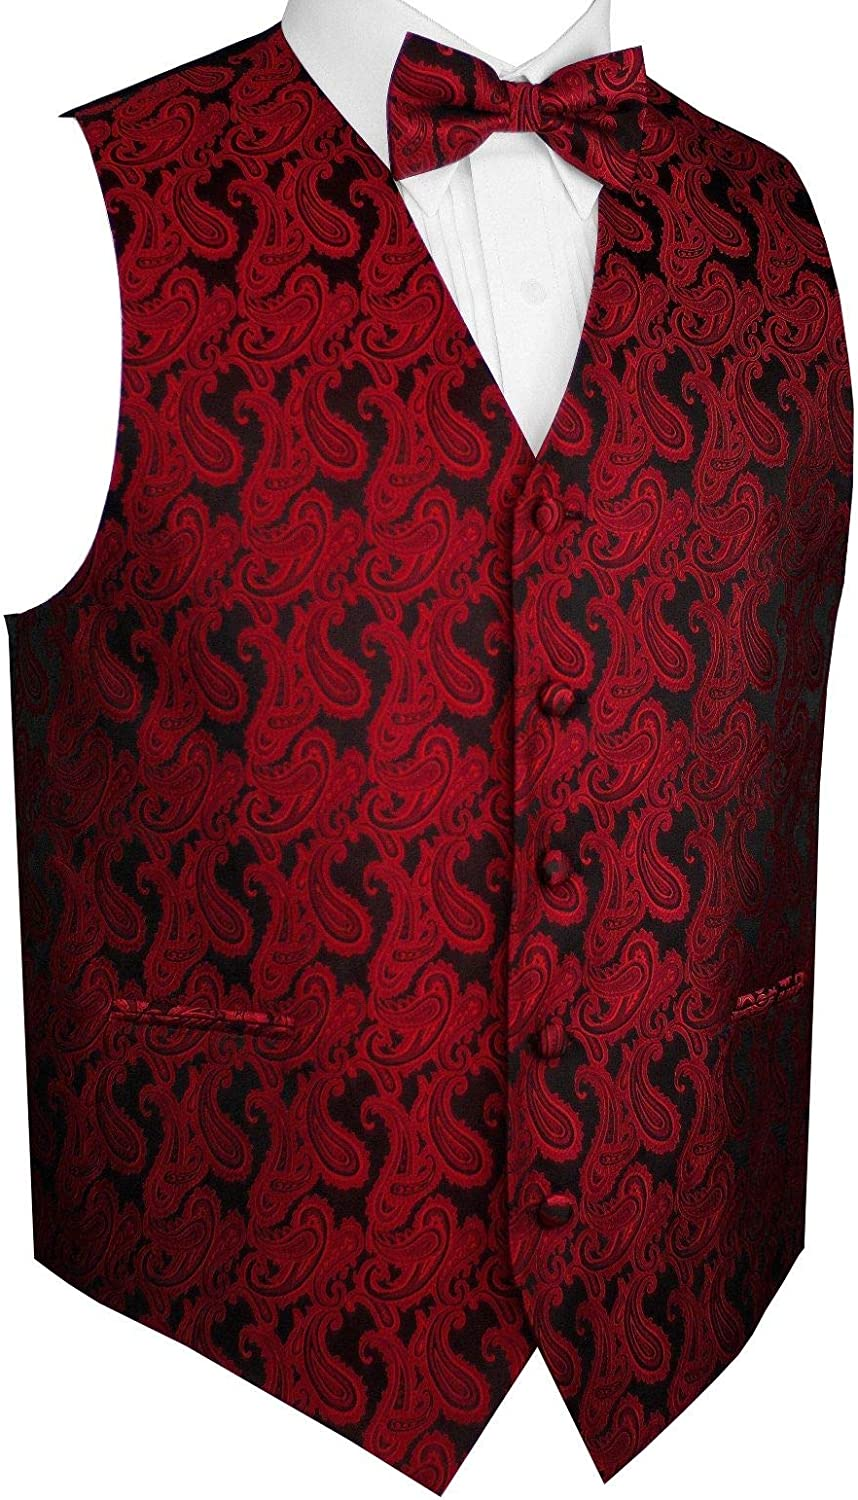 Brand Q Men's Tuxedo Vest and Bow-Tie Set